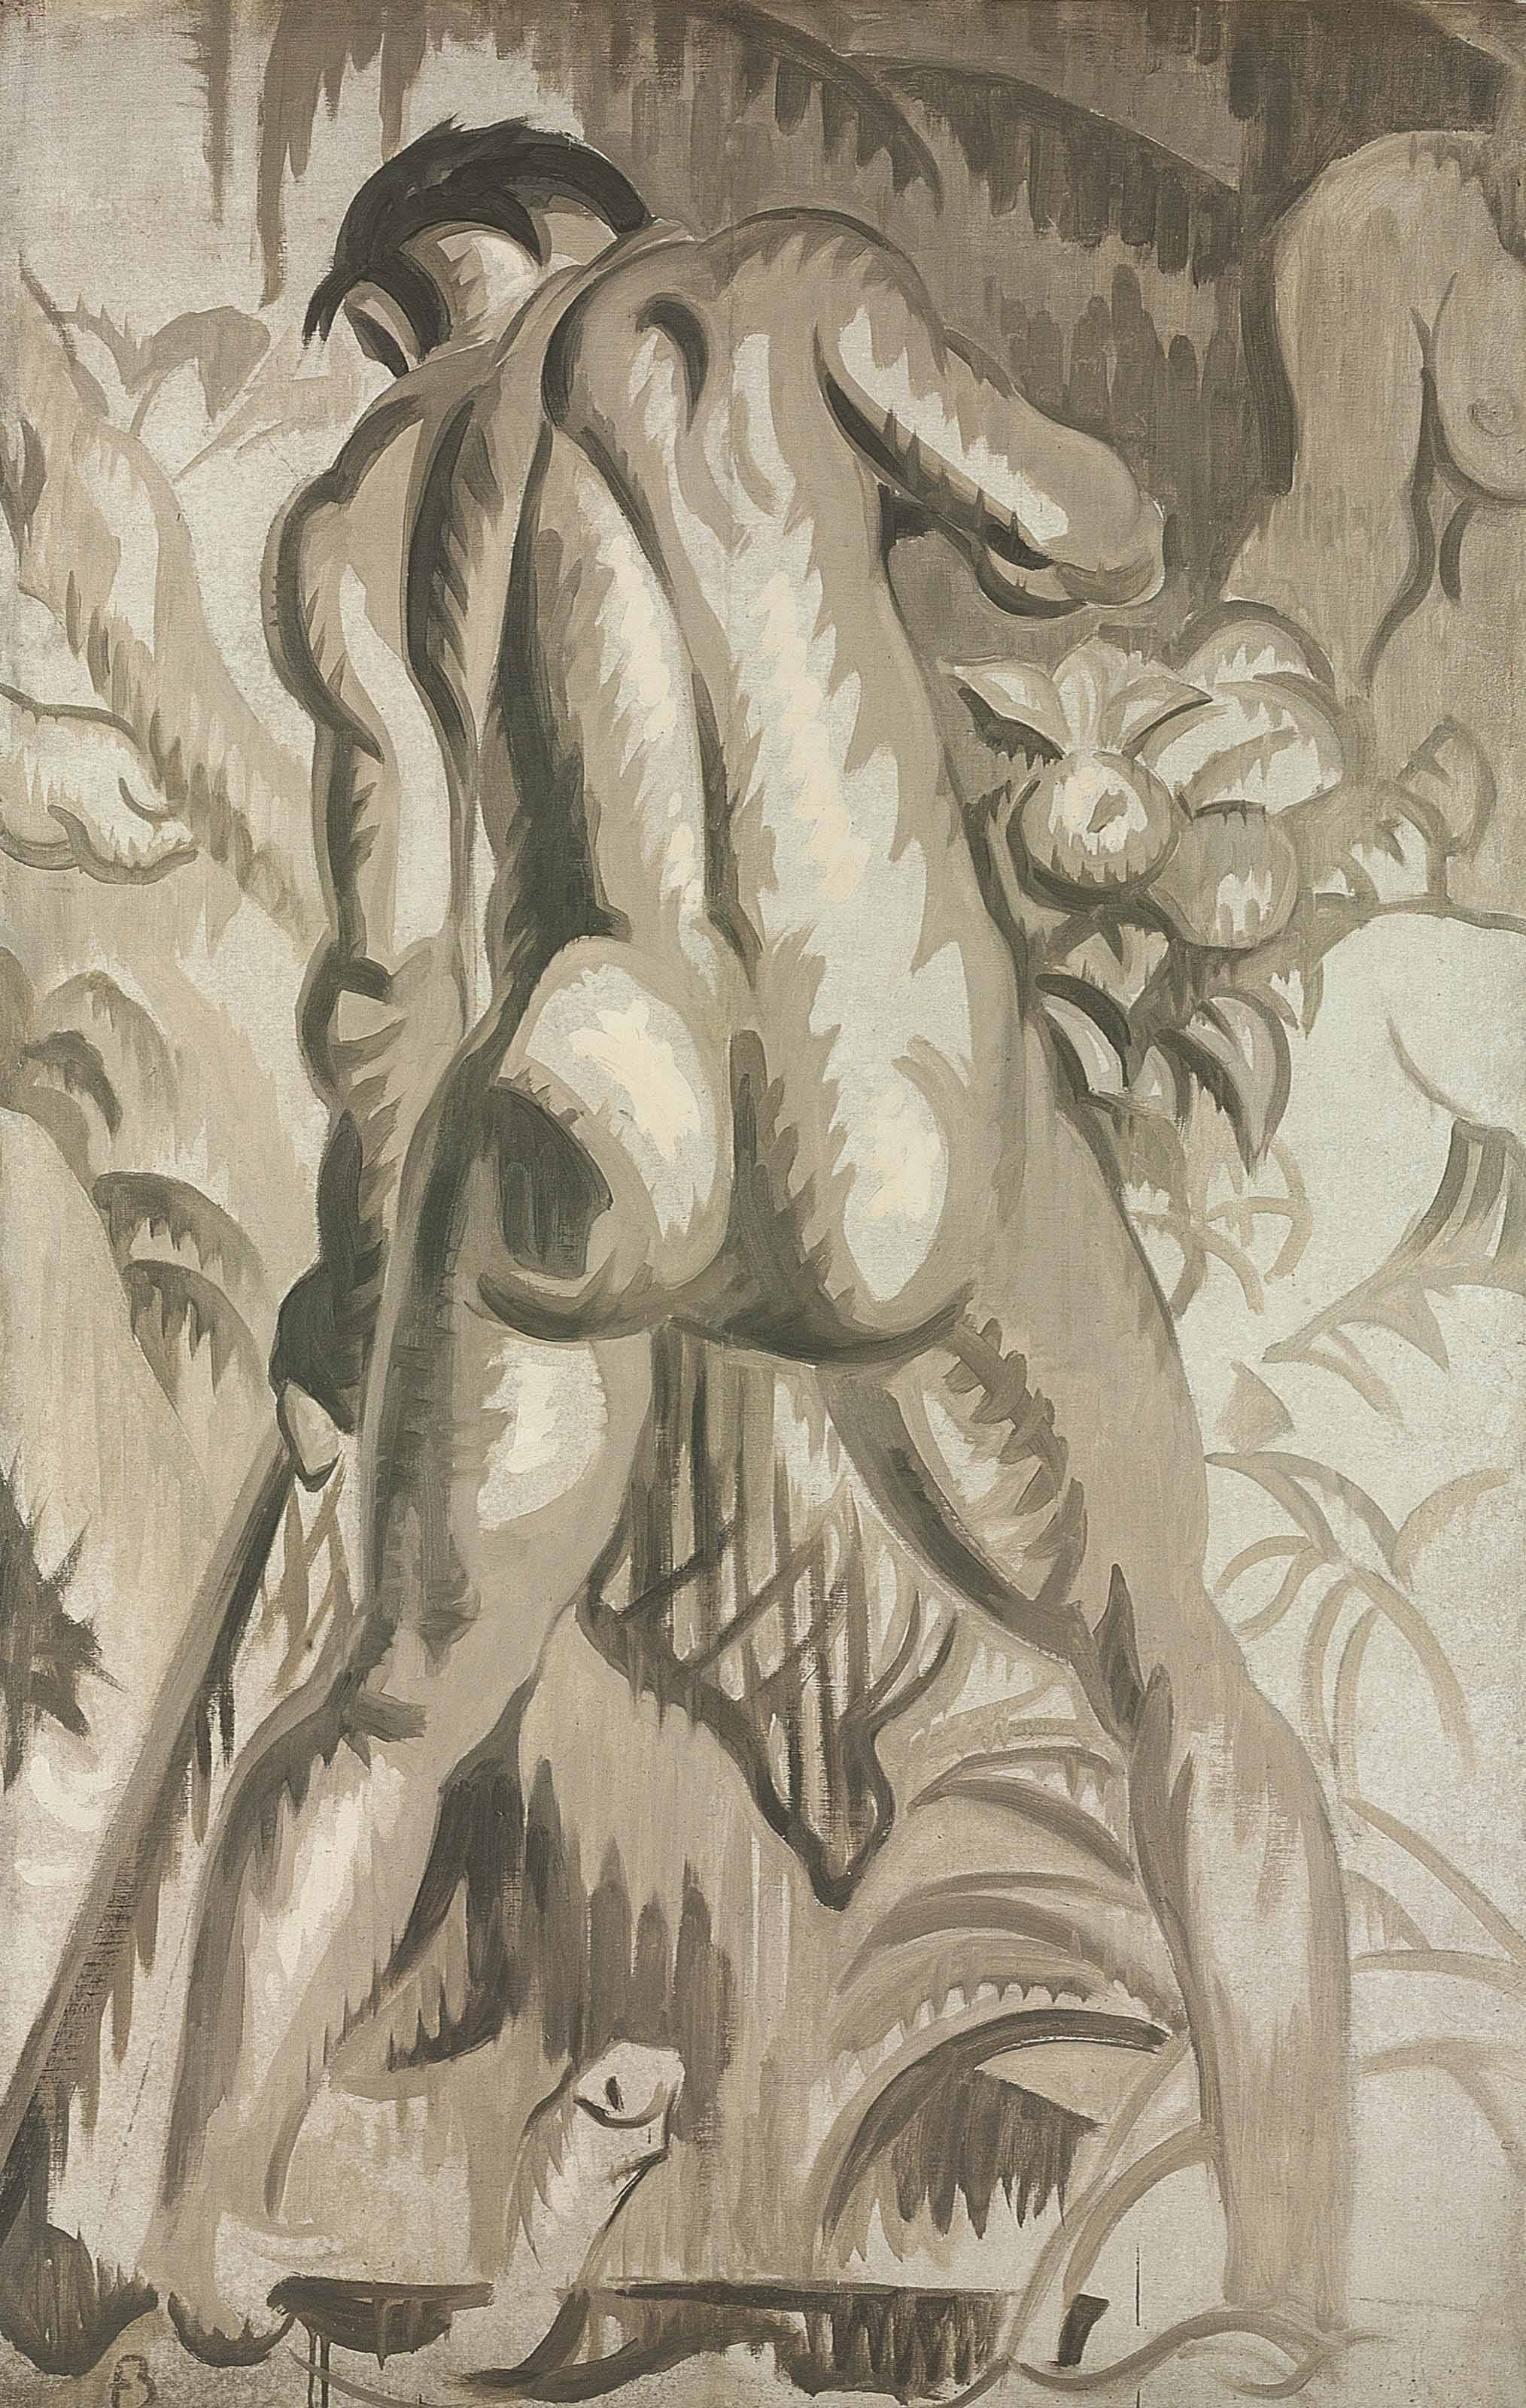 'Temptation', a Study for the Mural in 30 Rockefeller Plaza, New York